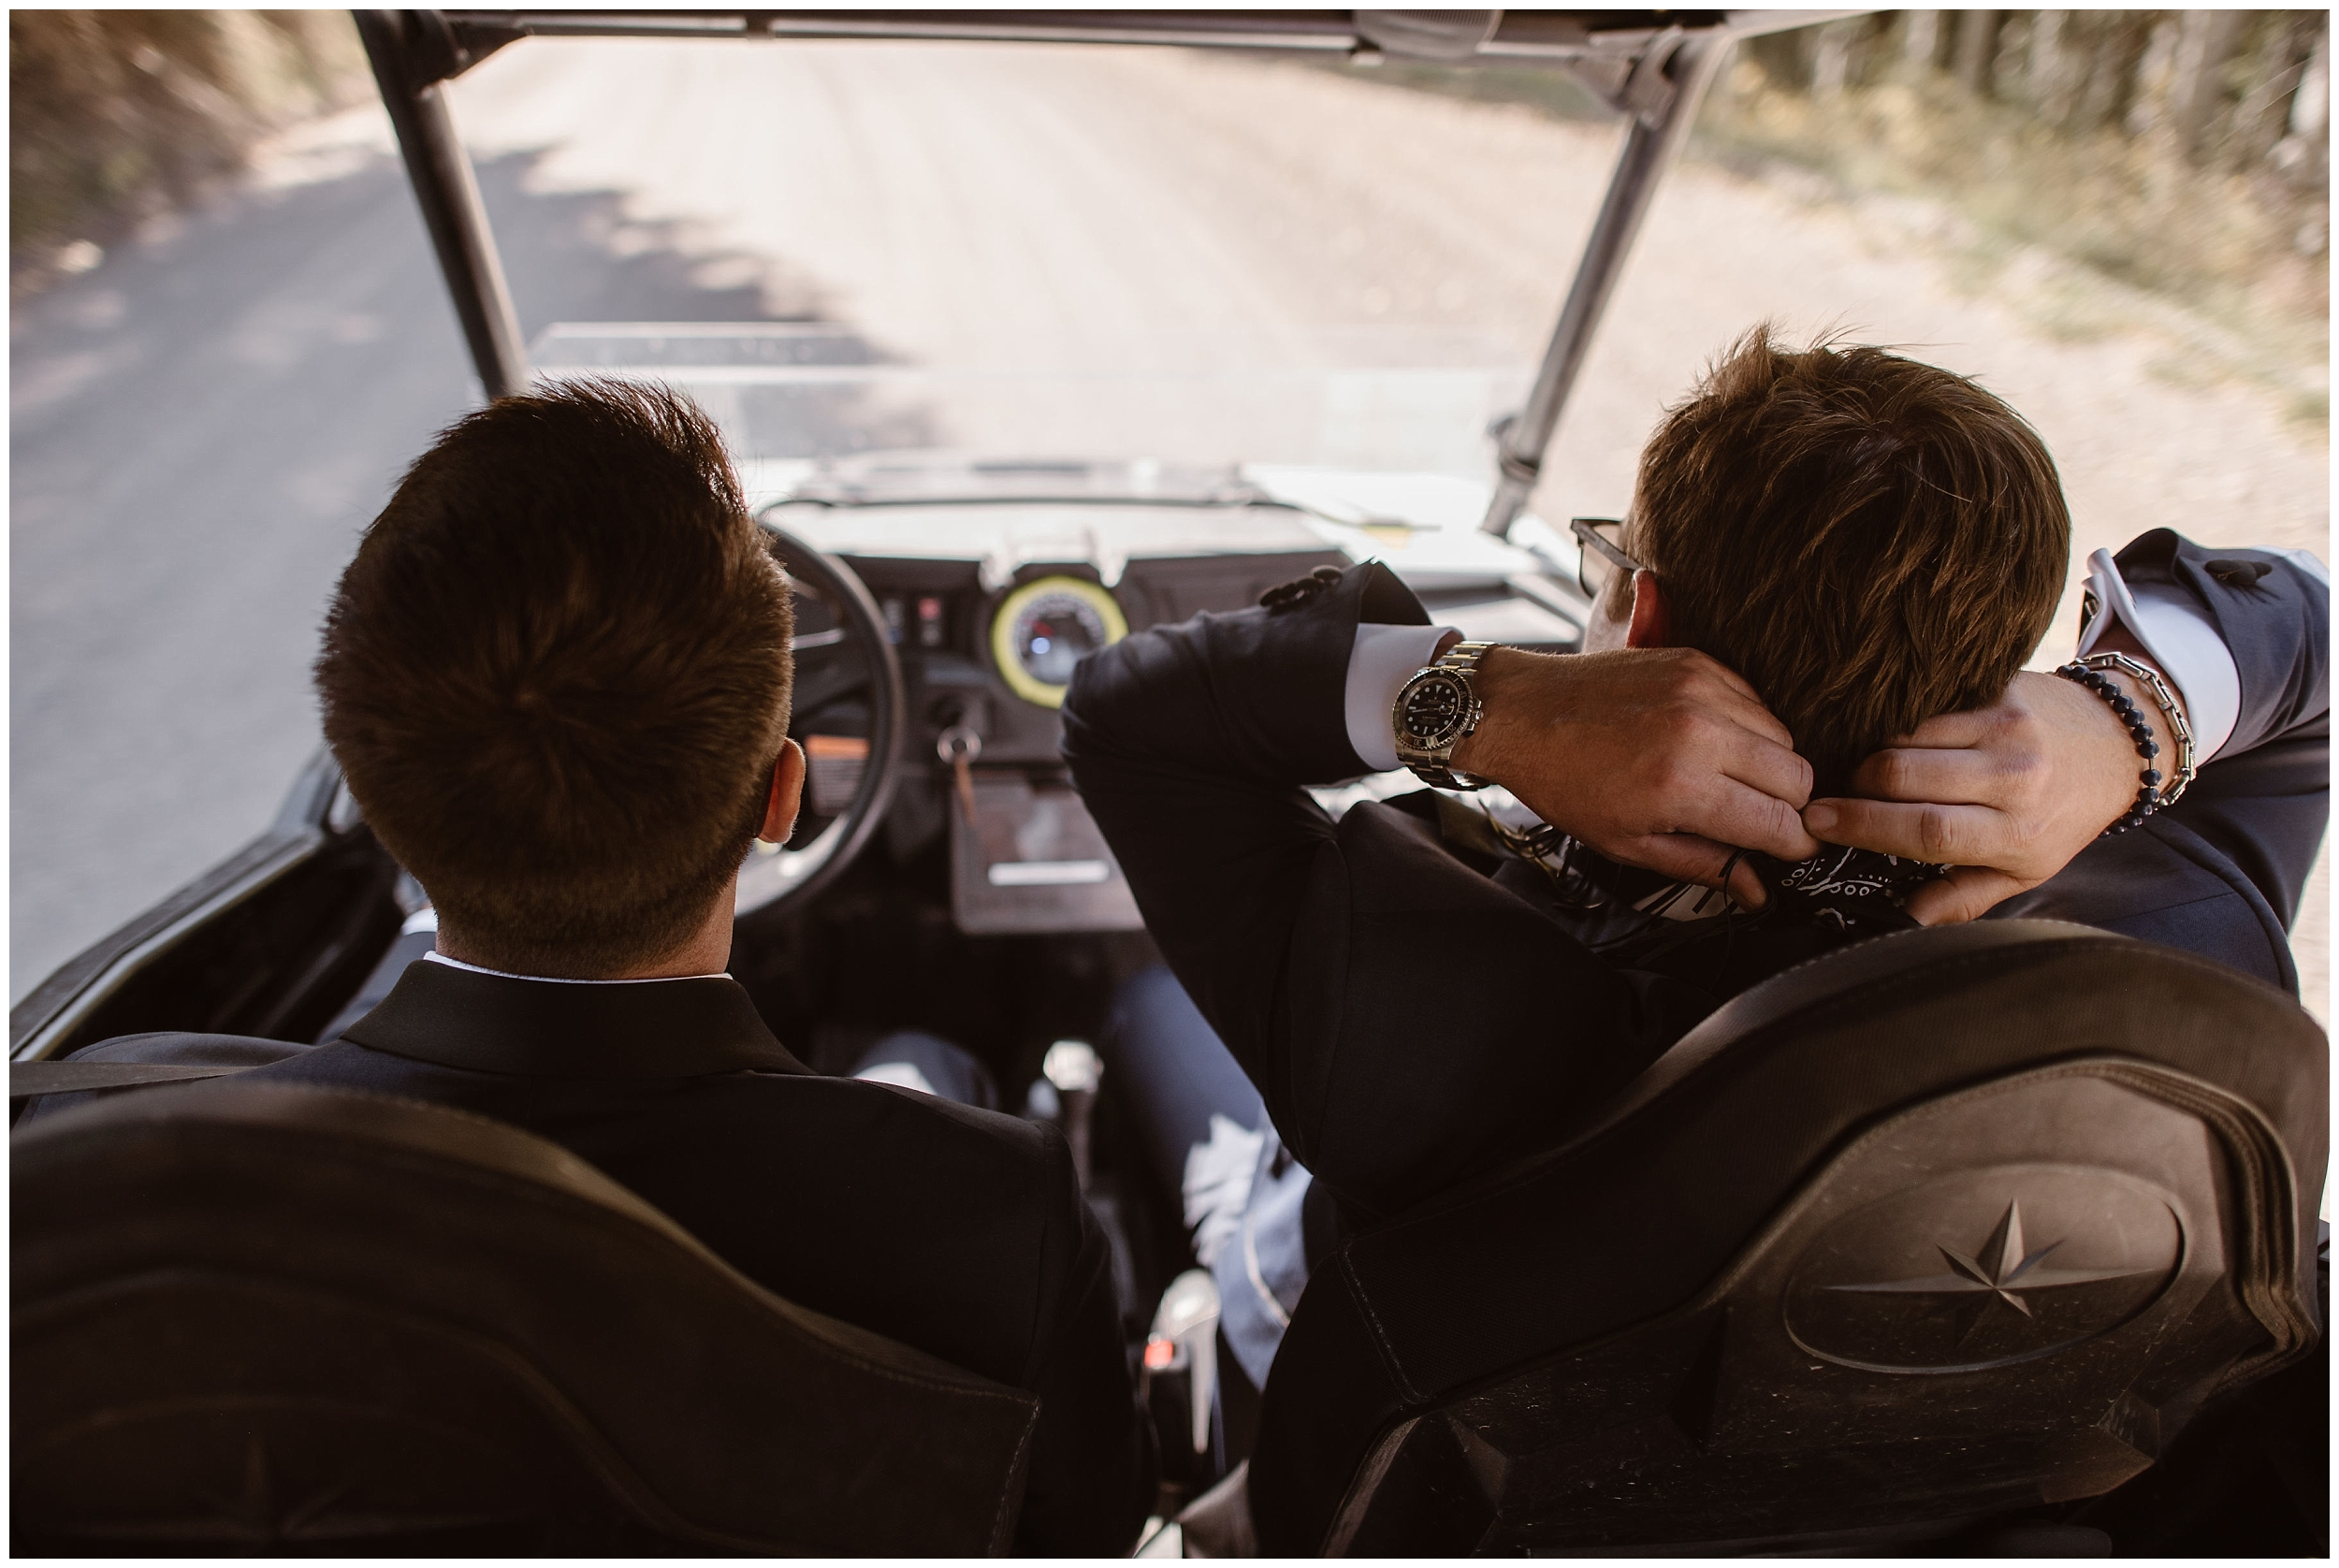 Brian and Ernie, the two grooms, sit in the front seat of their off-road vehicle as they head up in their side-by-side to their 4x4 elopement. The elopement ceremony location that Brian and Ernie chose was near and dear to their hearts.